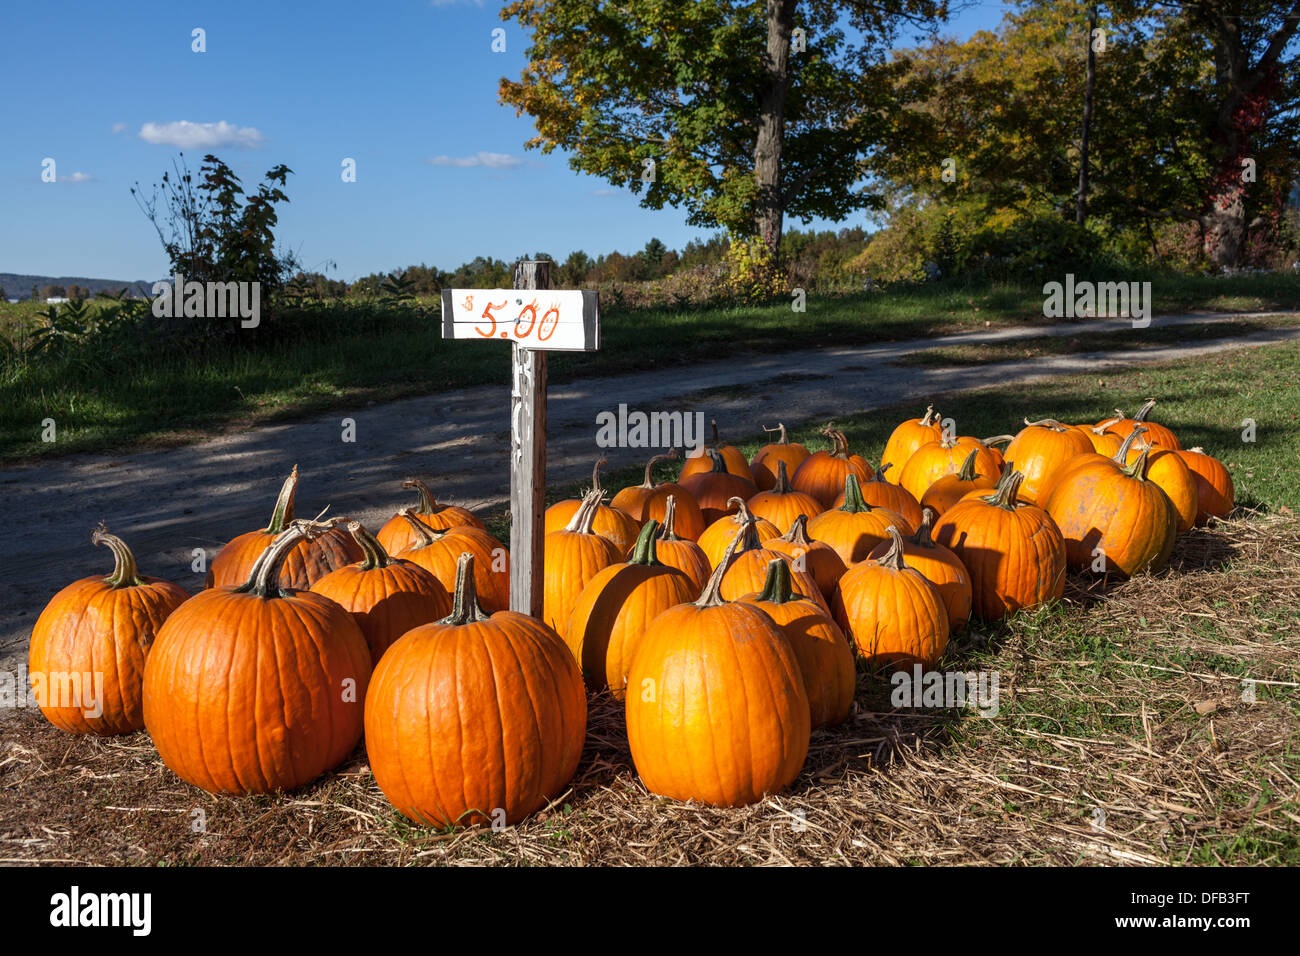 A good year for pumpkins in Mohawk Valley of New York State, late September. - Stock Image